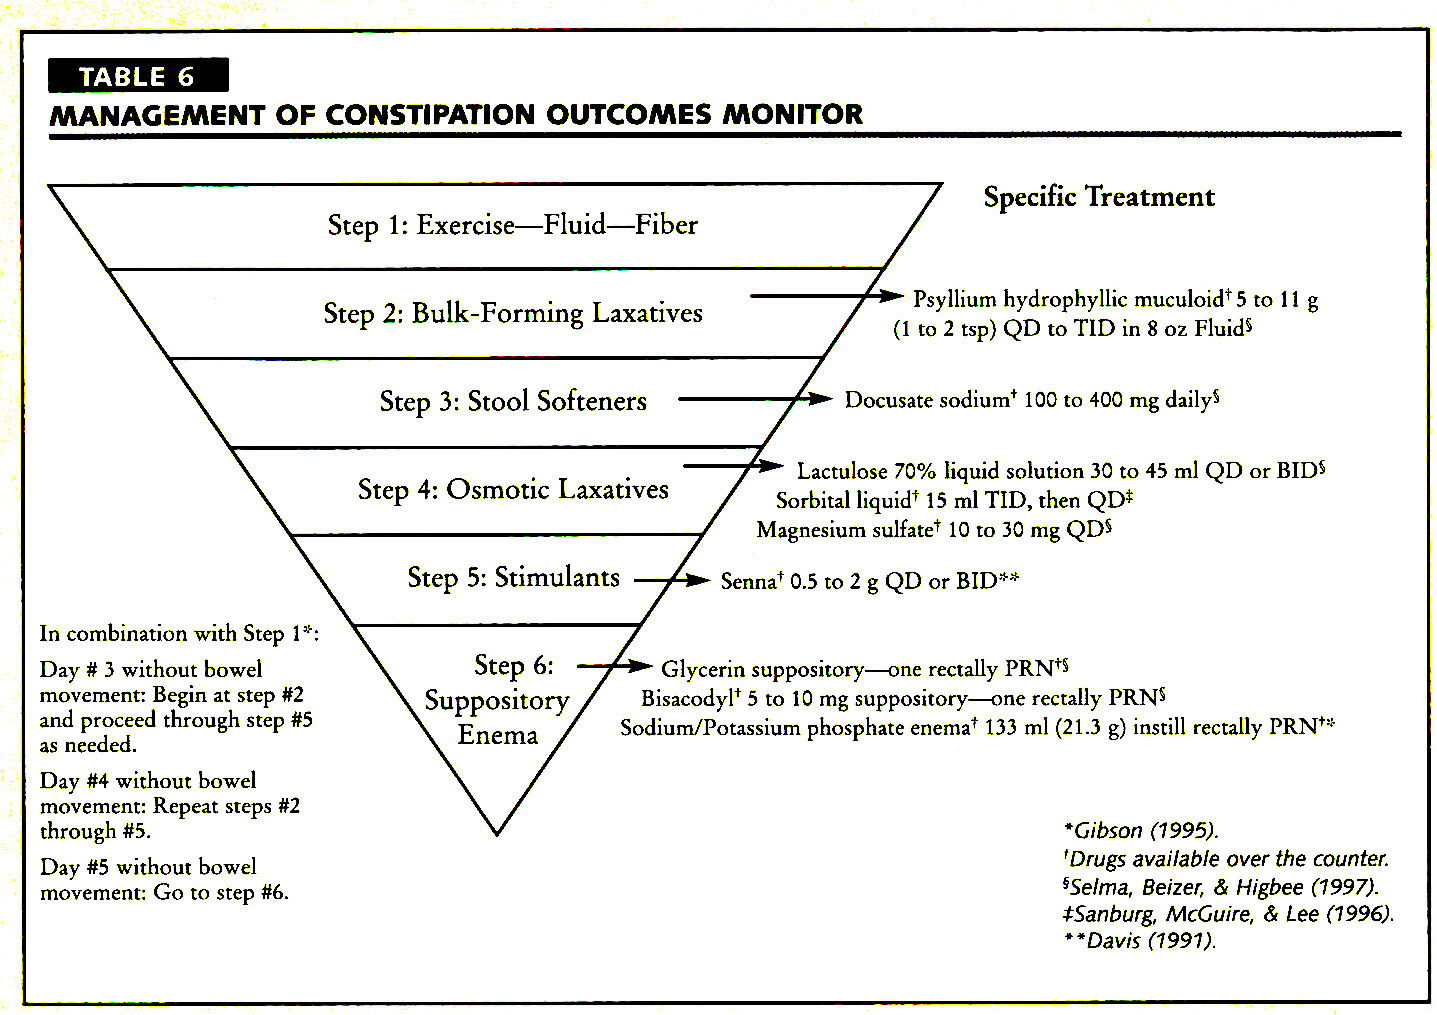 Research Based Protocol Management Of Constipation